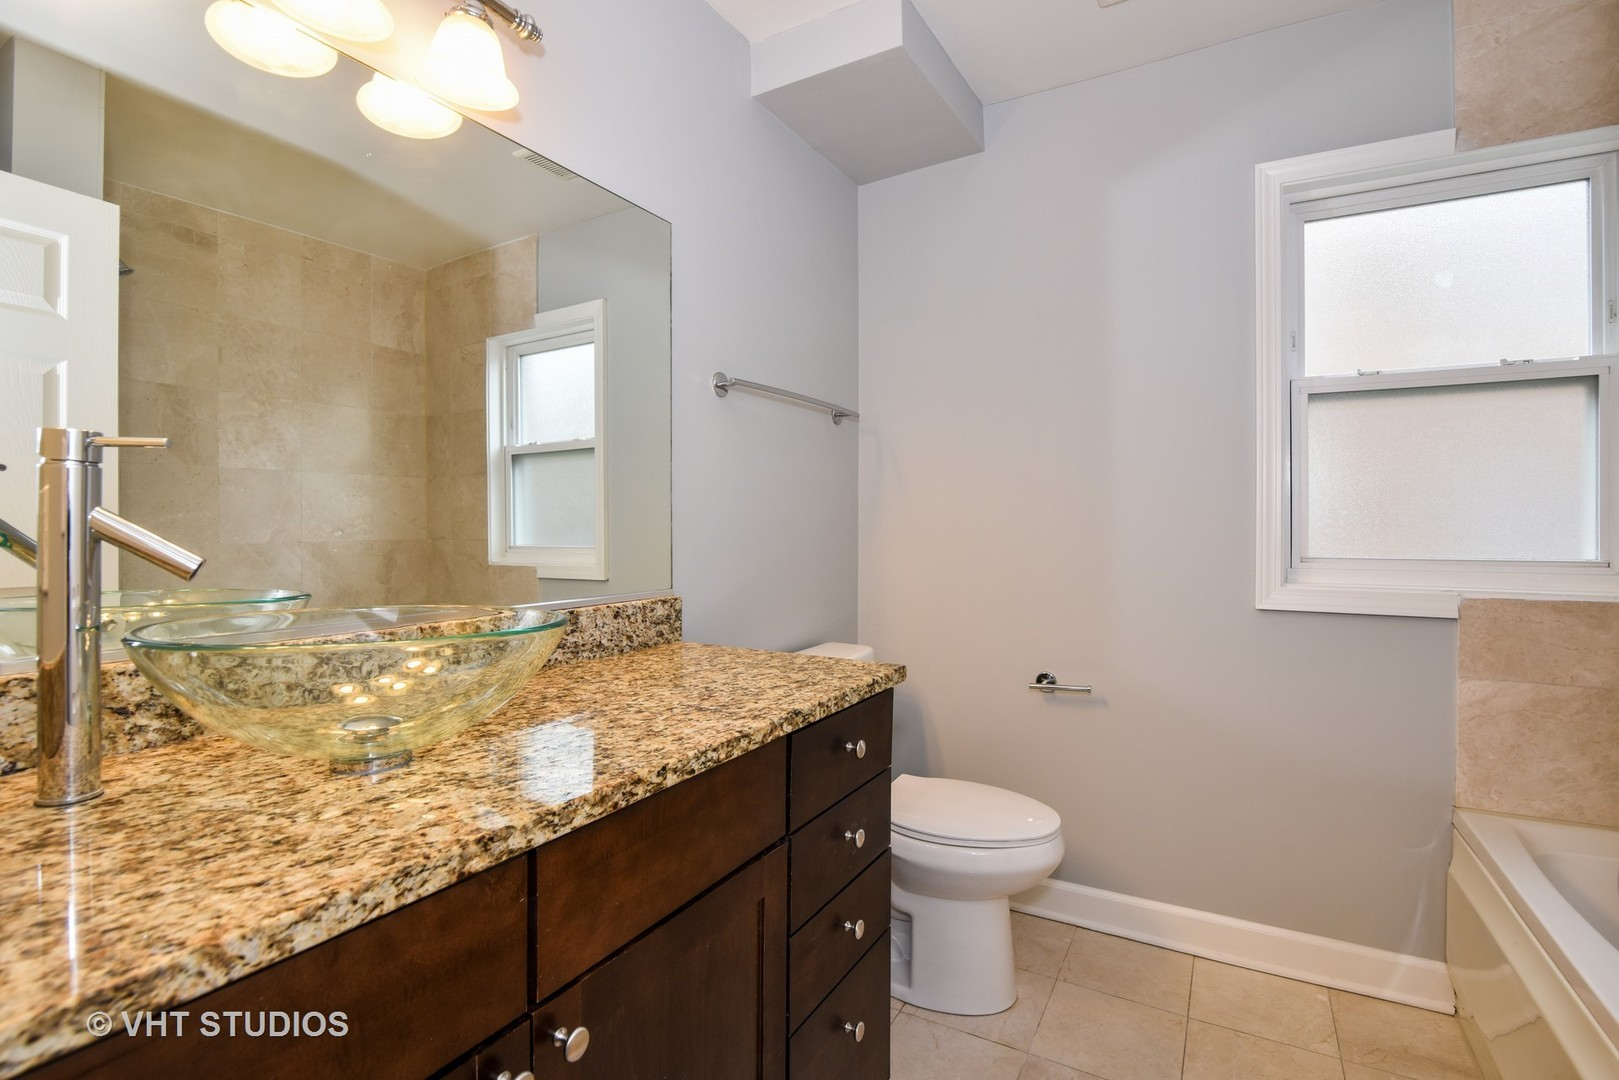 6427 N Damen AVE Unit #2E, Chicago, IL, 60645, condos and townhomes for sale